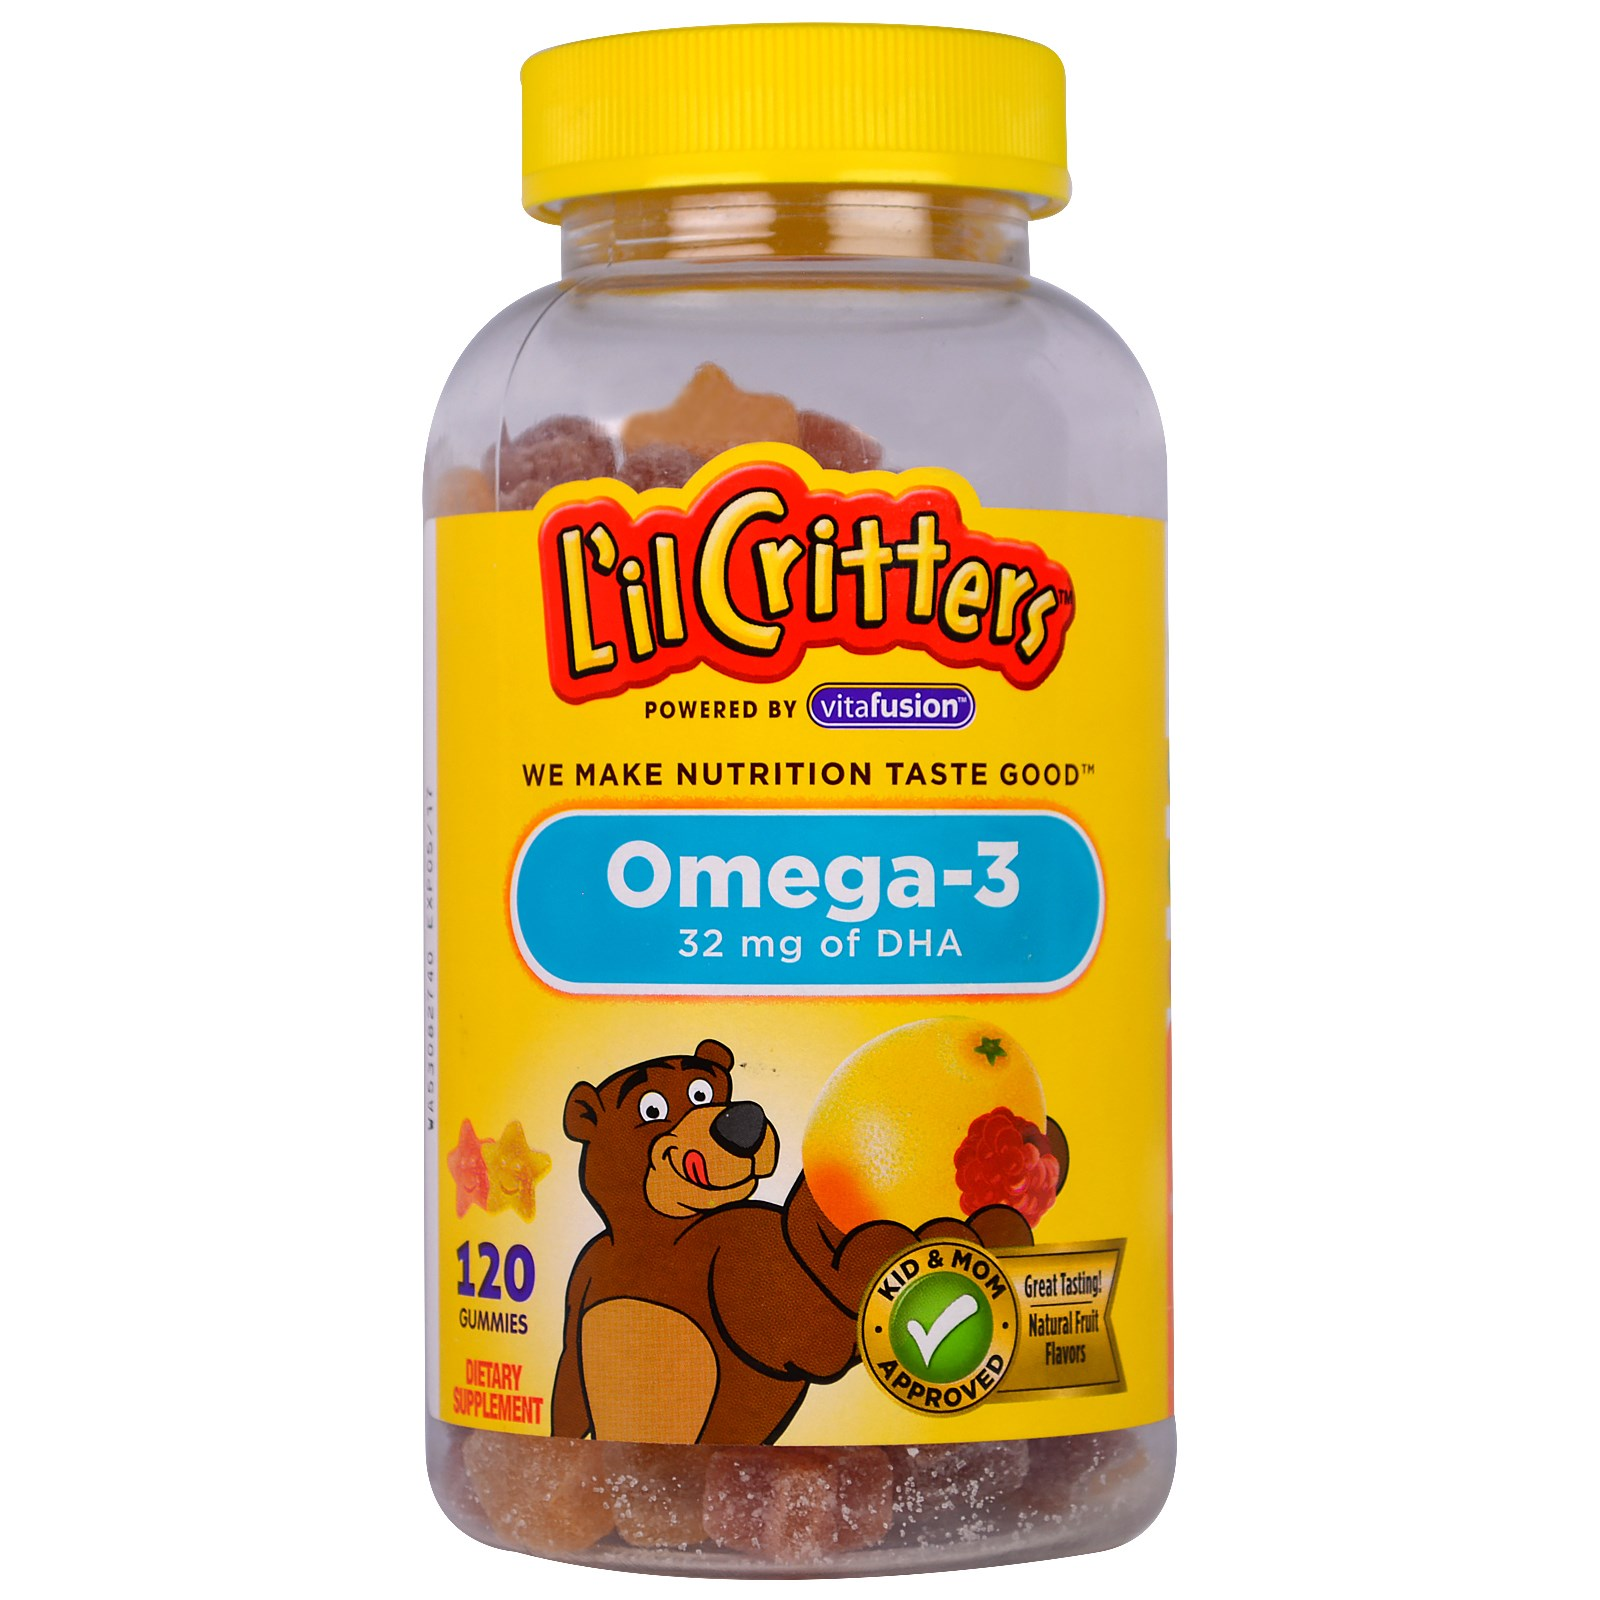 Lil critters omega 3